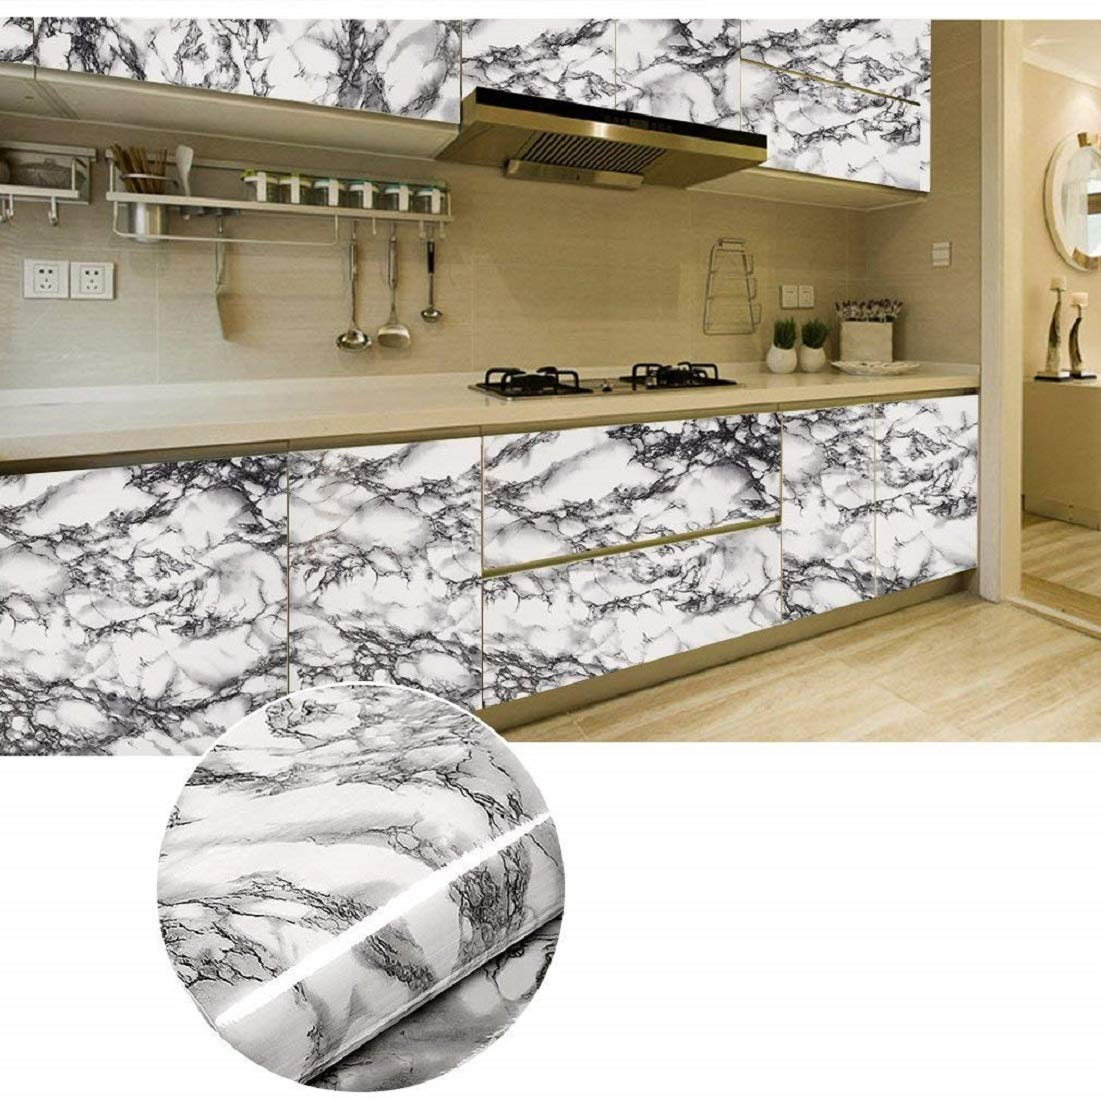 - Buy Indian Royals Contact Paper Removable Wallpaper Film Self-Adhesive  Marble Sticker Kitchen Peel And Stick Backsplash Tile Countertop Furniture  Shelf Liner(100 Cm * 60 Cm) Online At Low Prices In India -